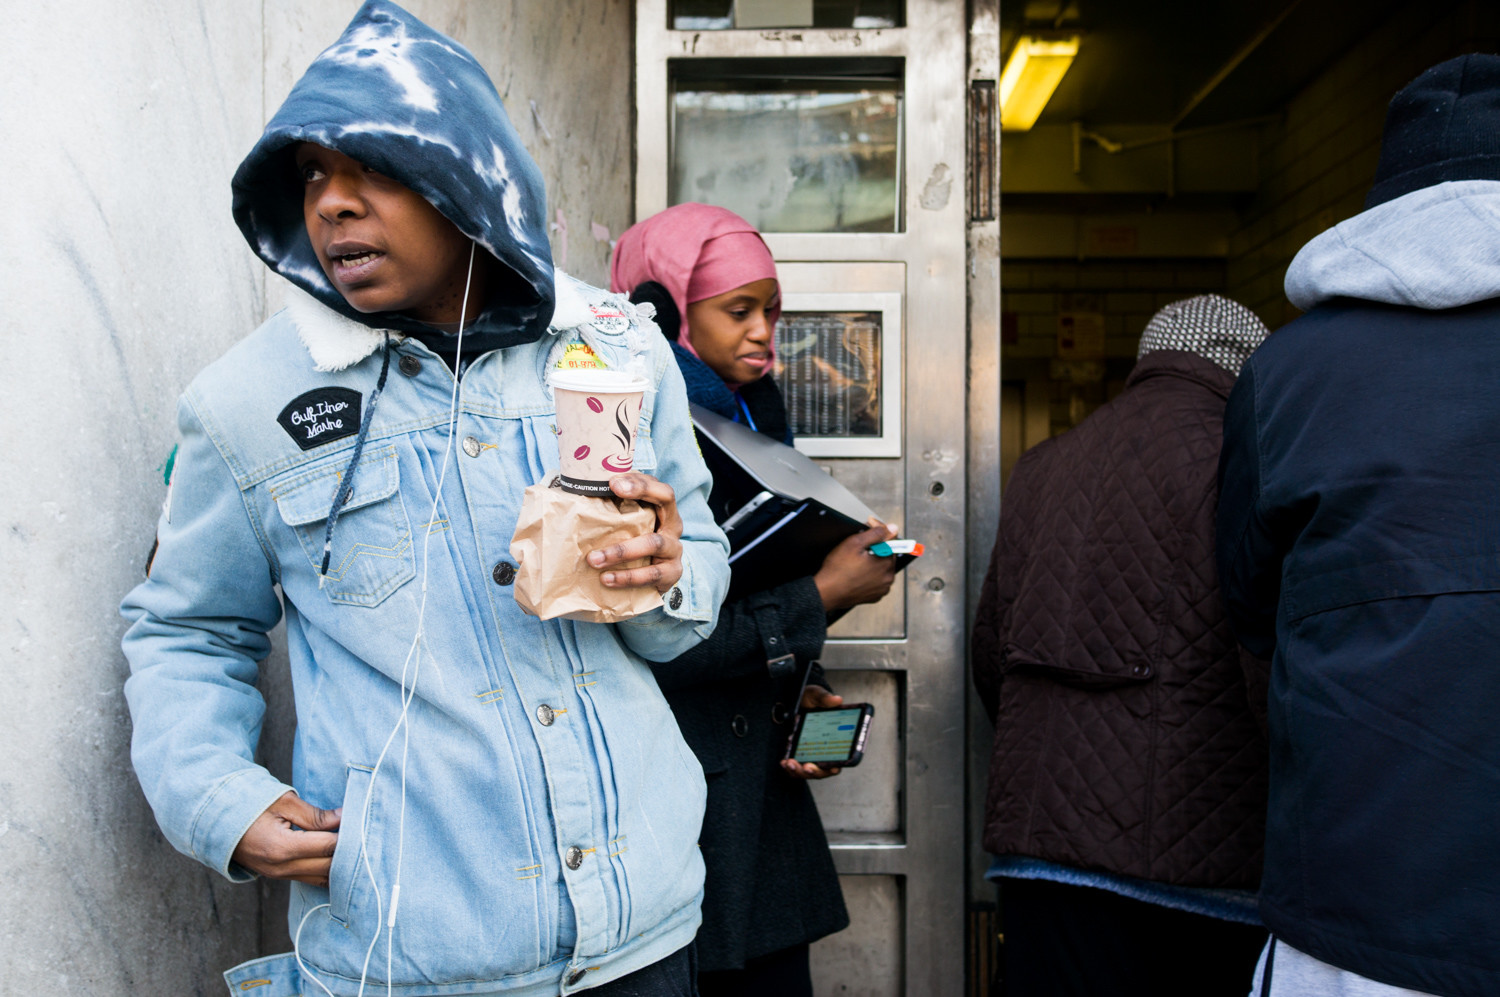 Sieta Montford, a resident of the New York City Housing Authority's Marble Hill development, left, talks about problems in her building. One major issue — the front door lock is broken, allowing anyone to enter.